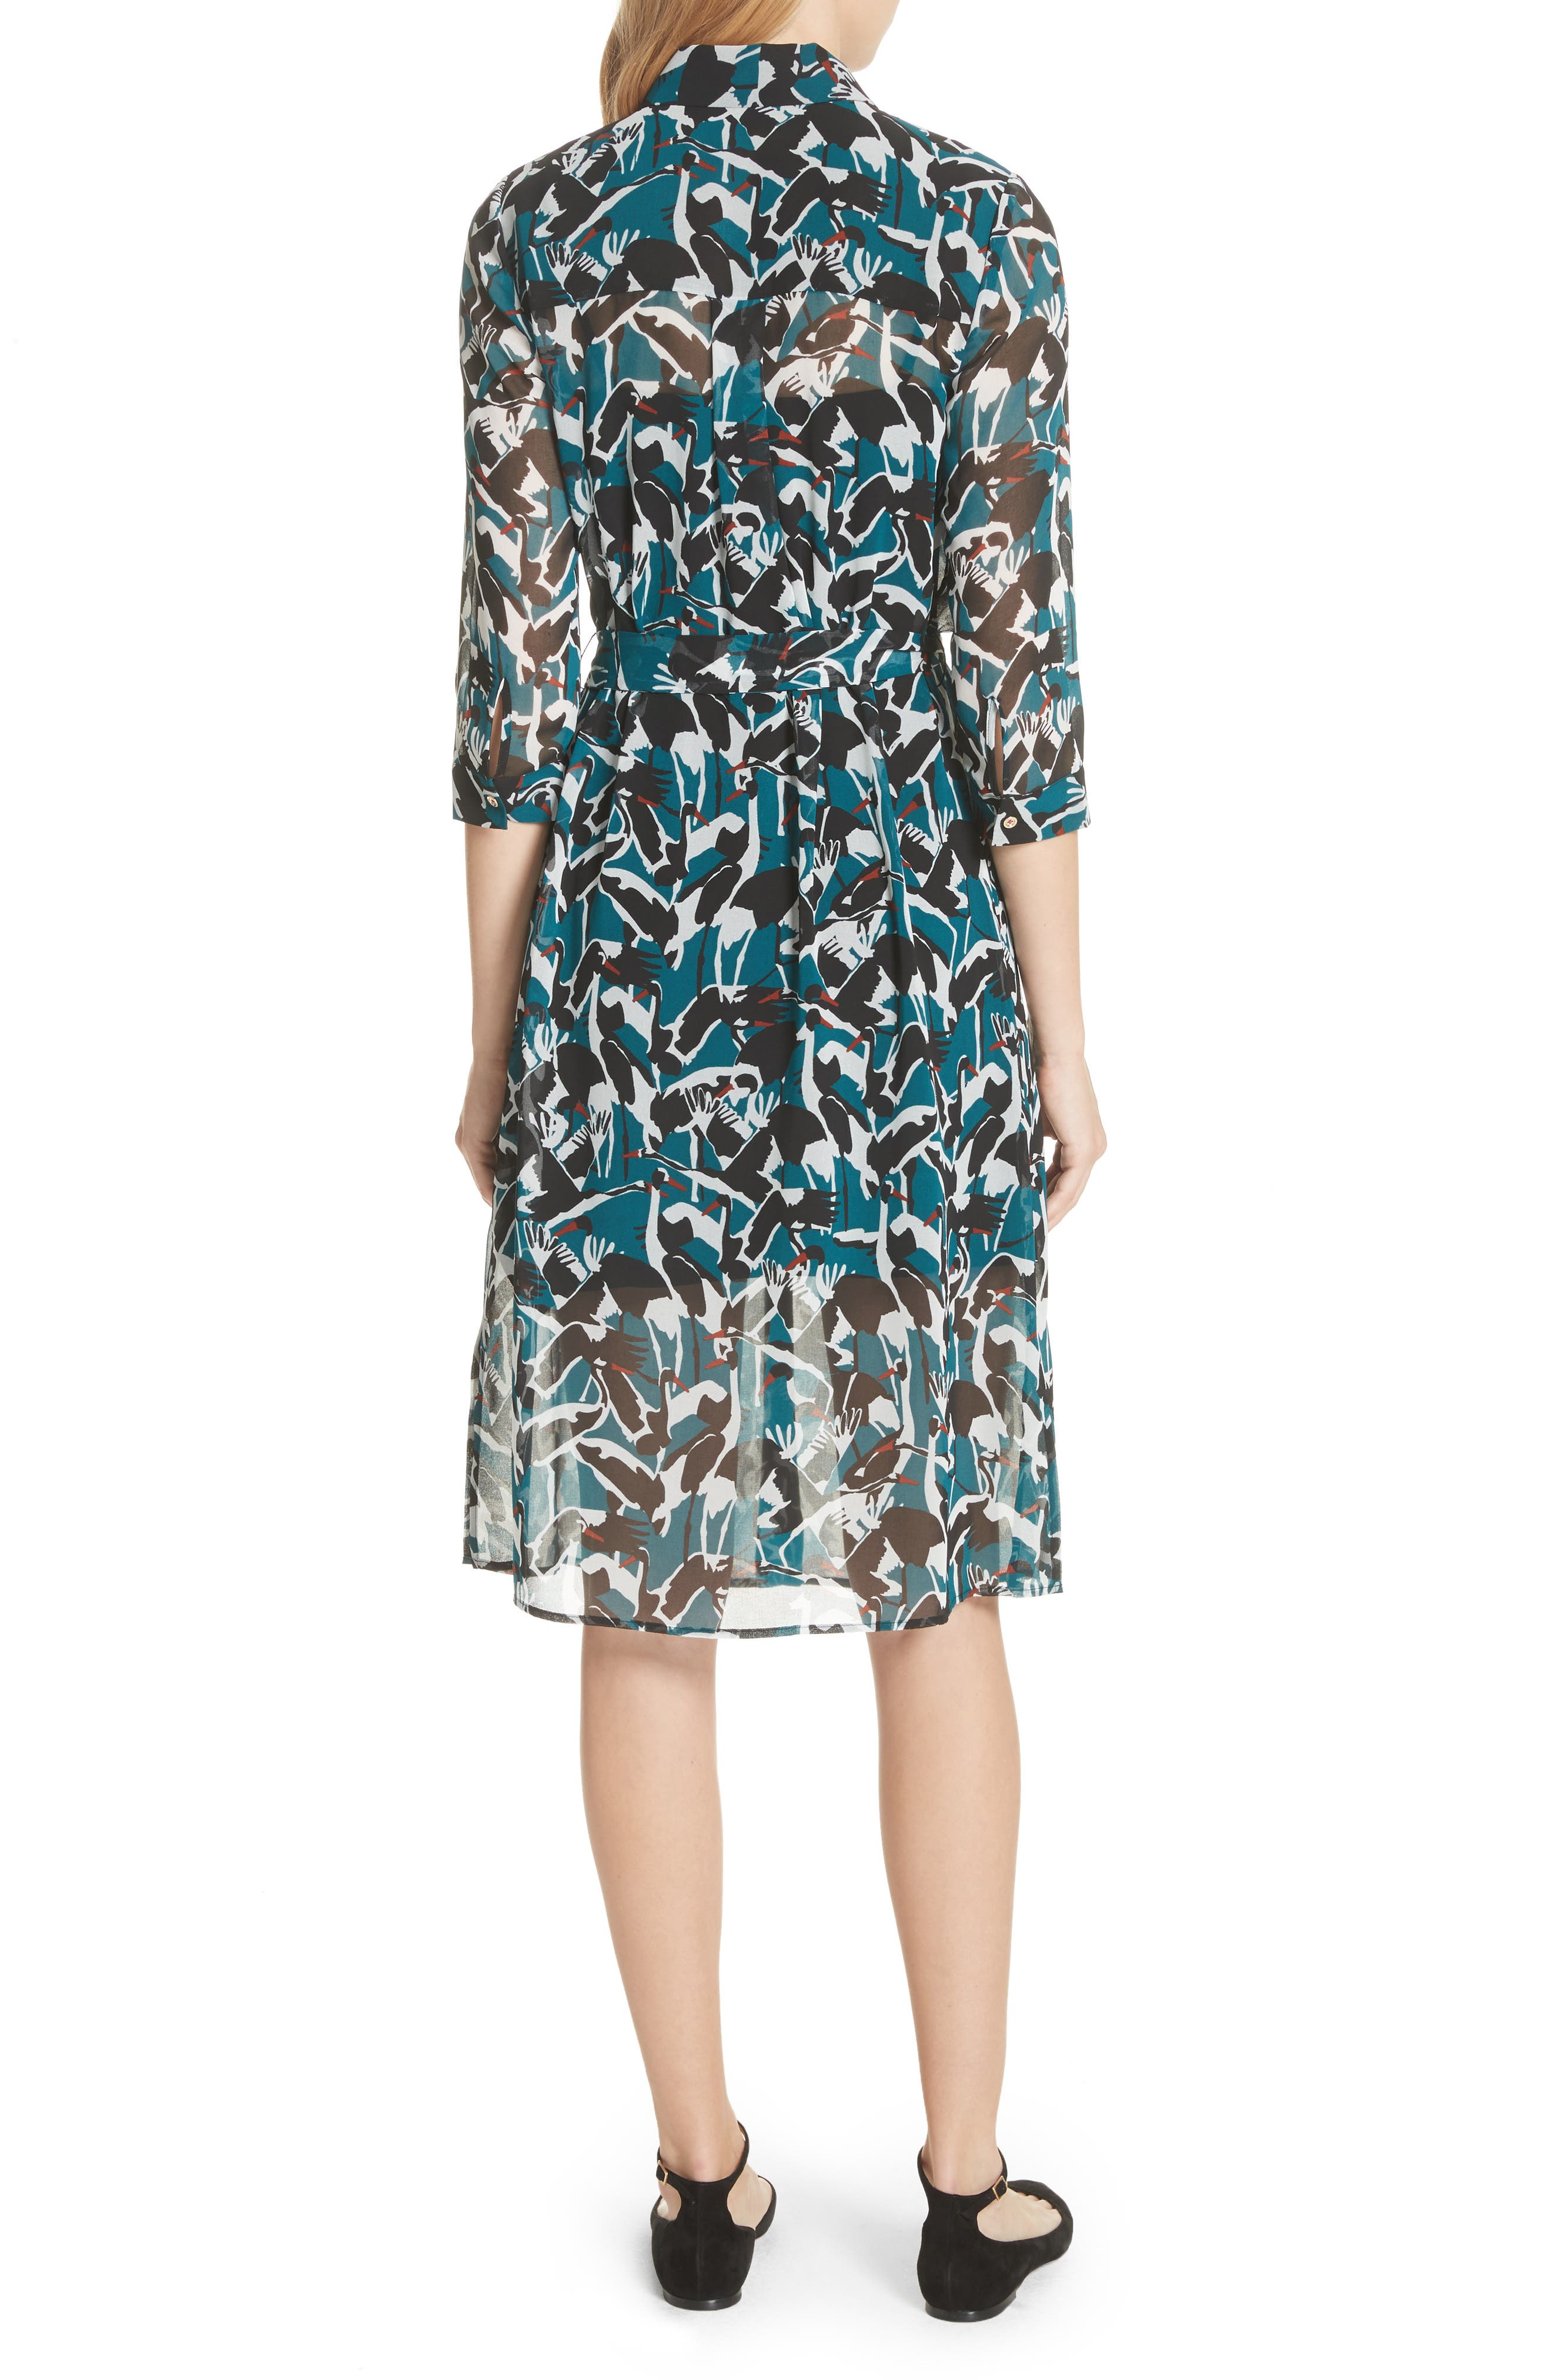 Colour by Numbers Crane Shirtdress,                             Alternate thumbnail 2, color,                             440